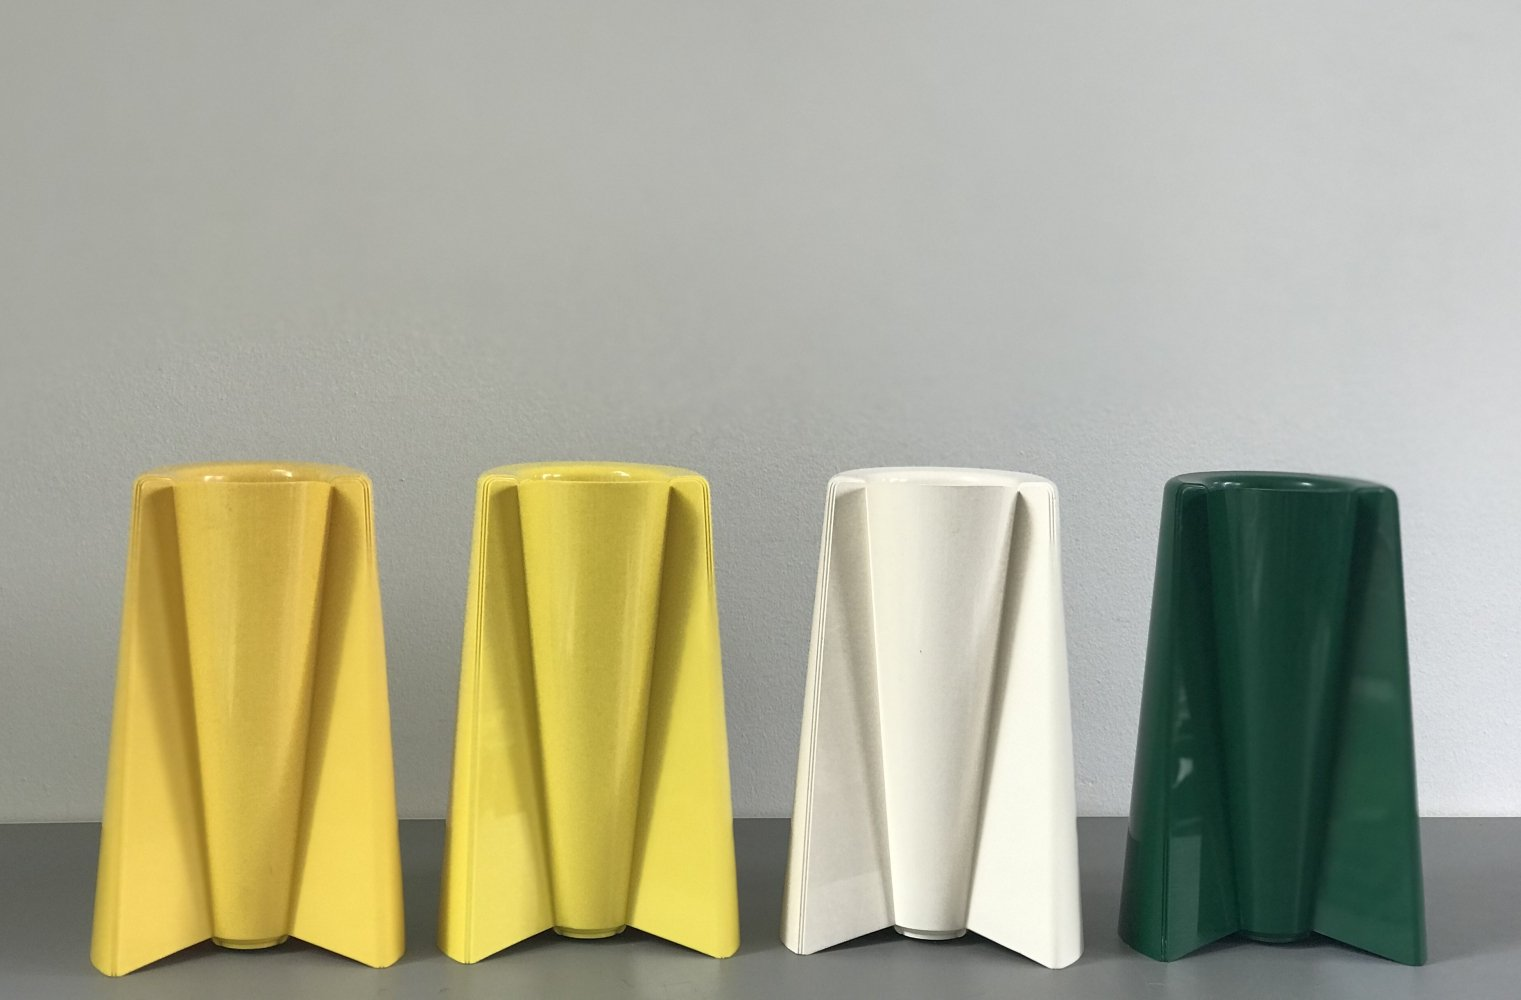 4 x Pago Pago vase by Enzo Mari for Danese, 1970s